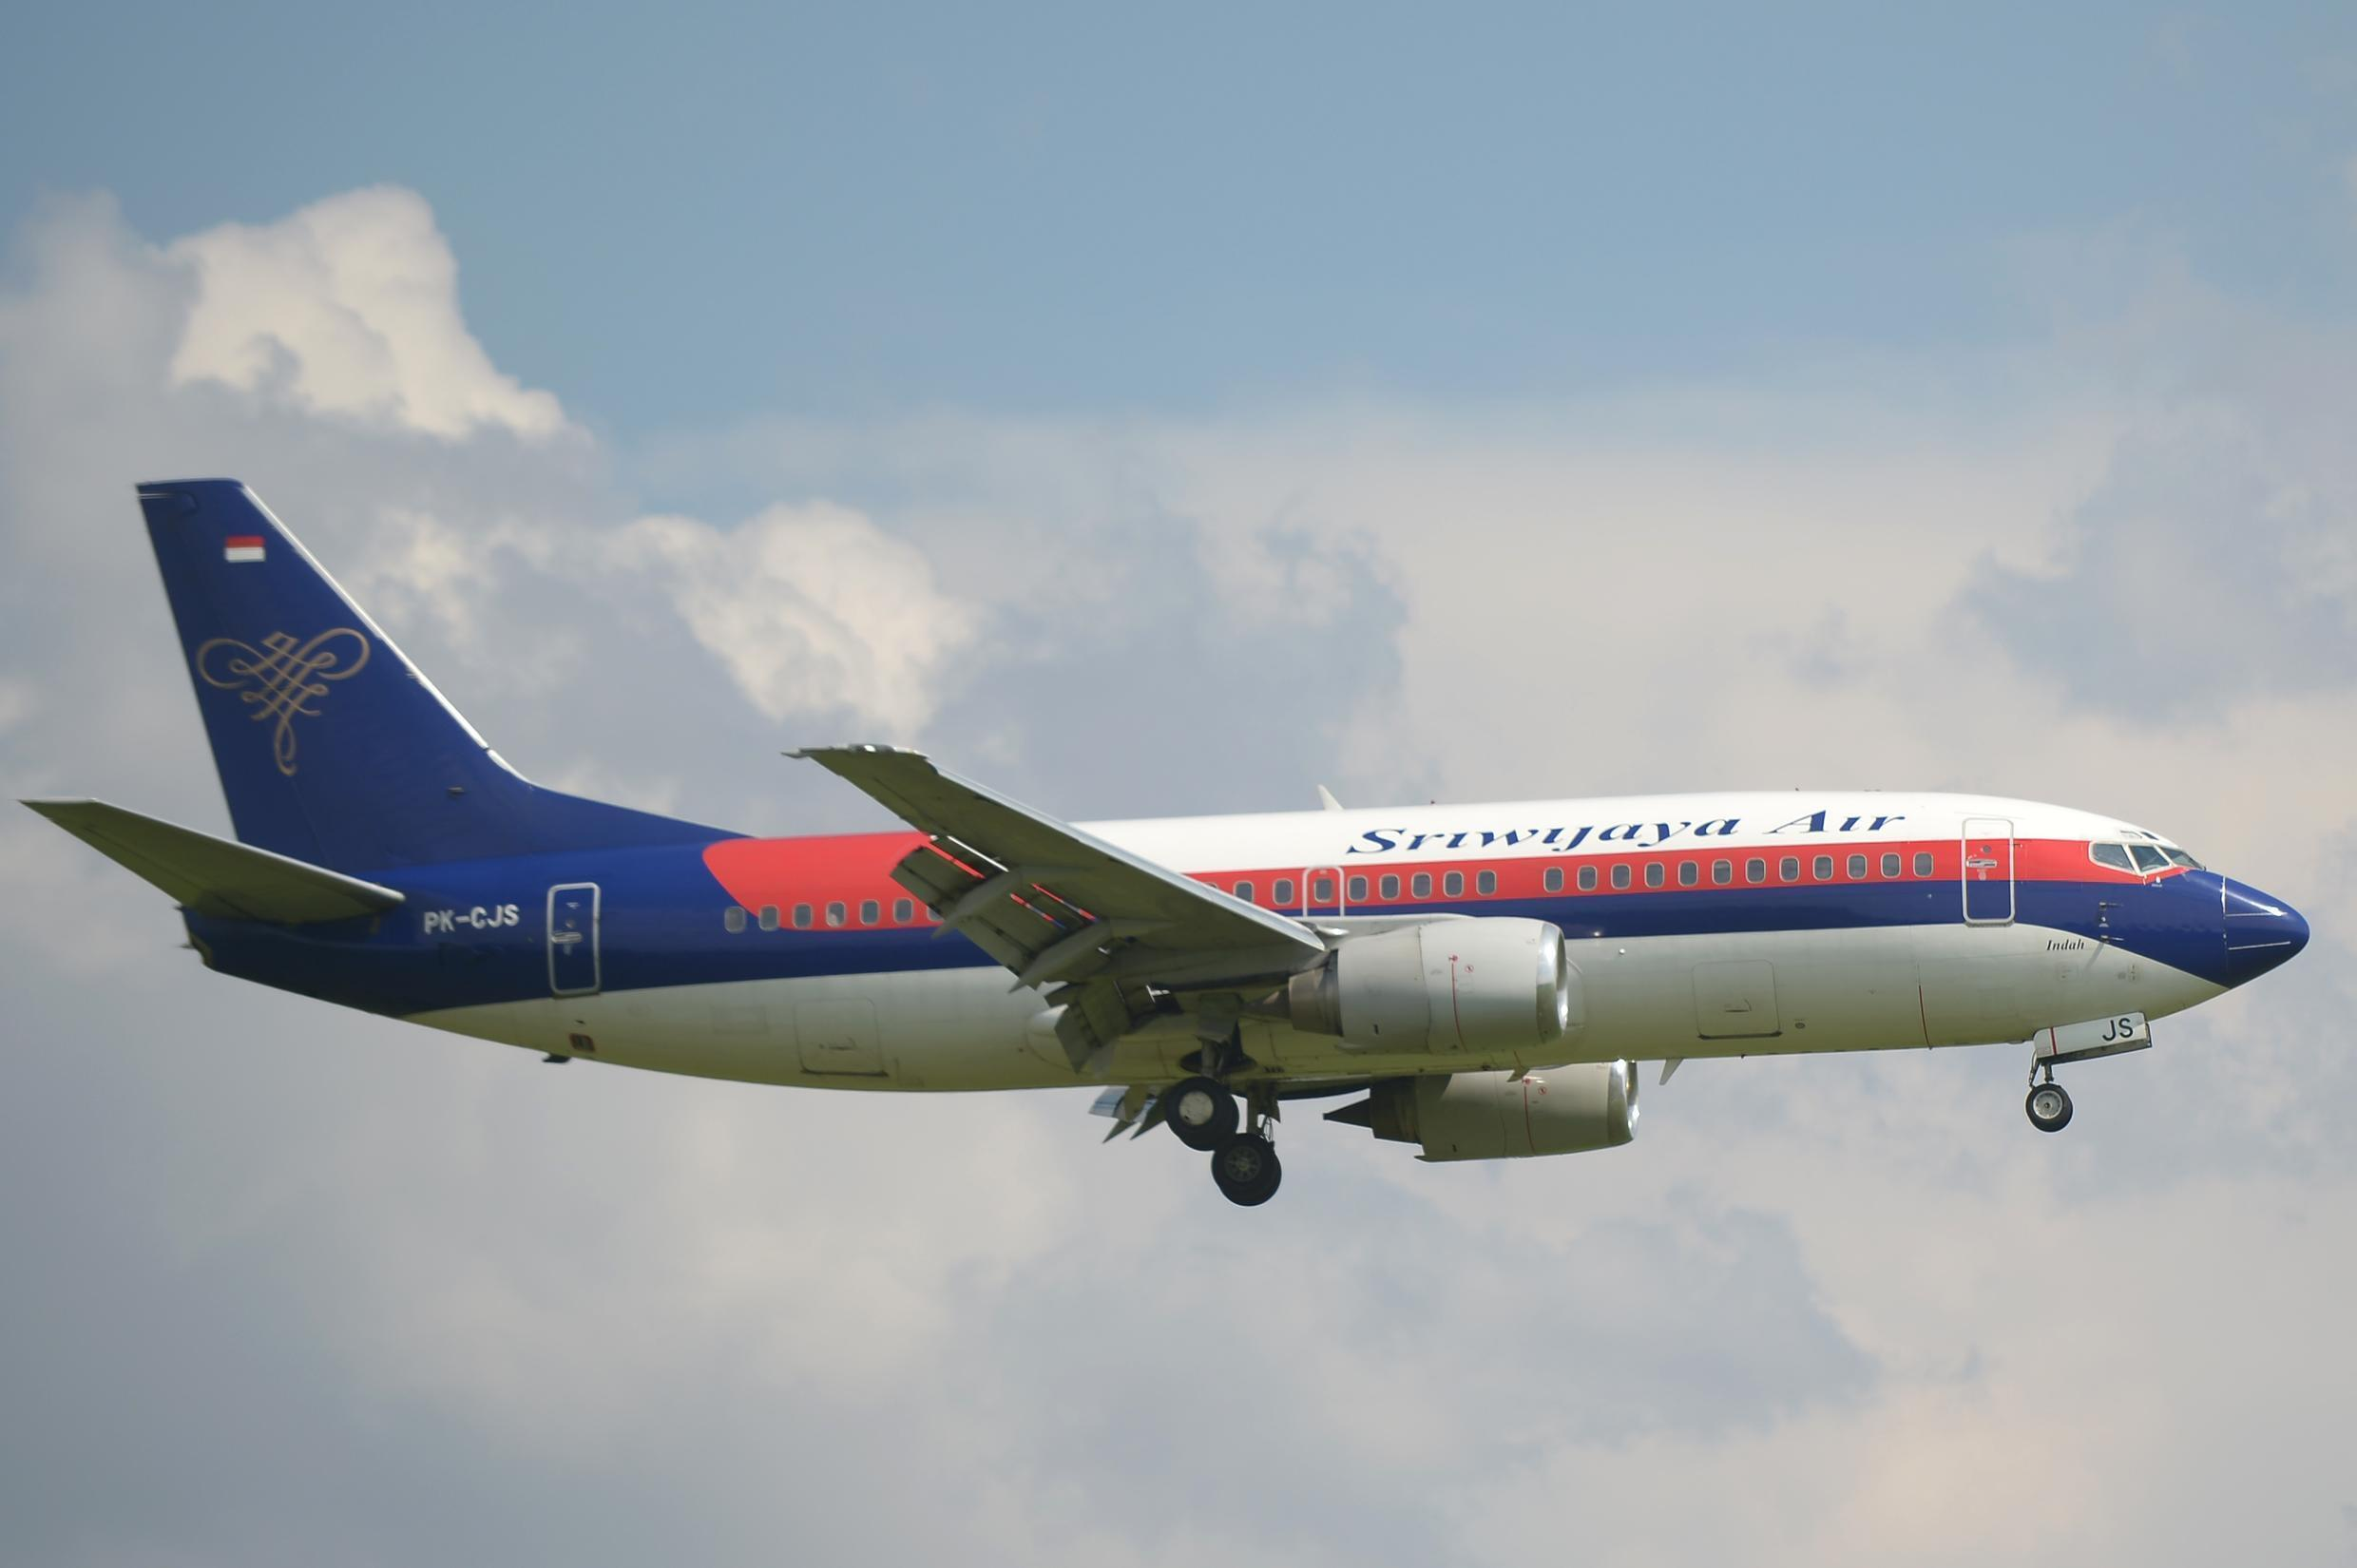 The Boeing 737-500 operated by Sriwijaya Air disappeared from radar screens shortly after take-off.